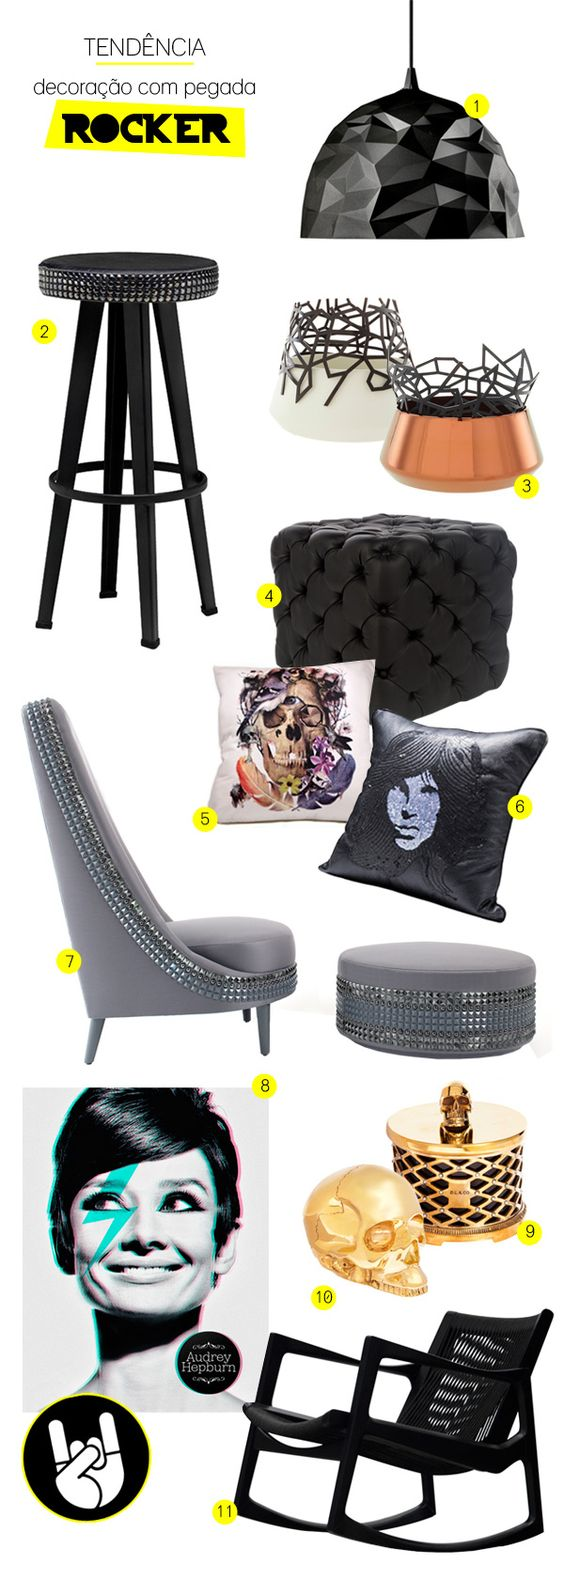 rock n roll furniture and decor #decor #rocknroll